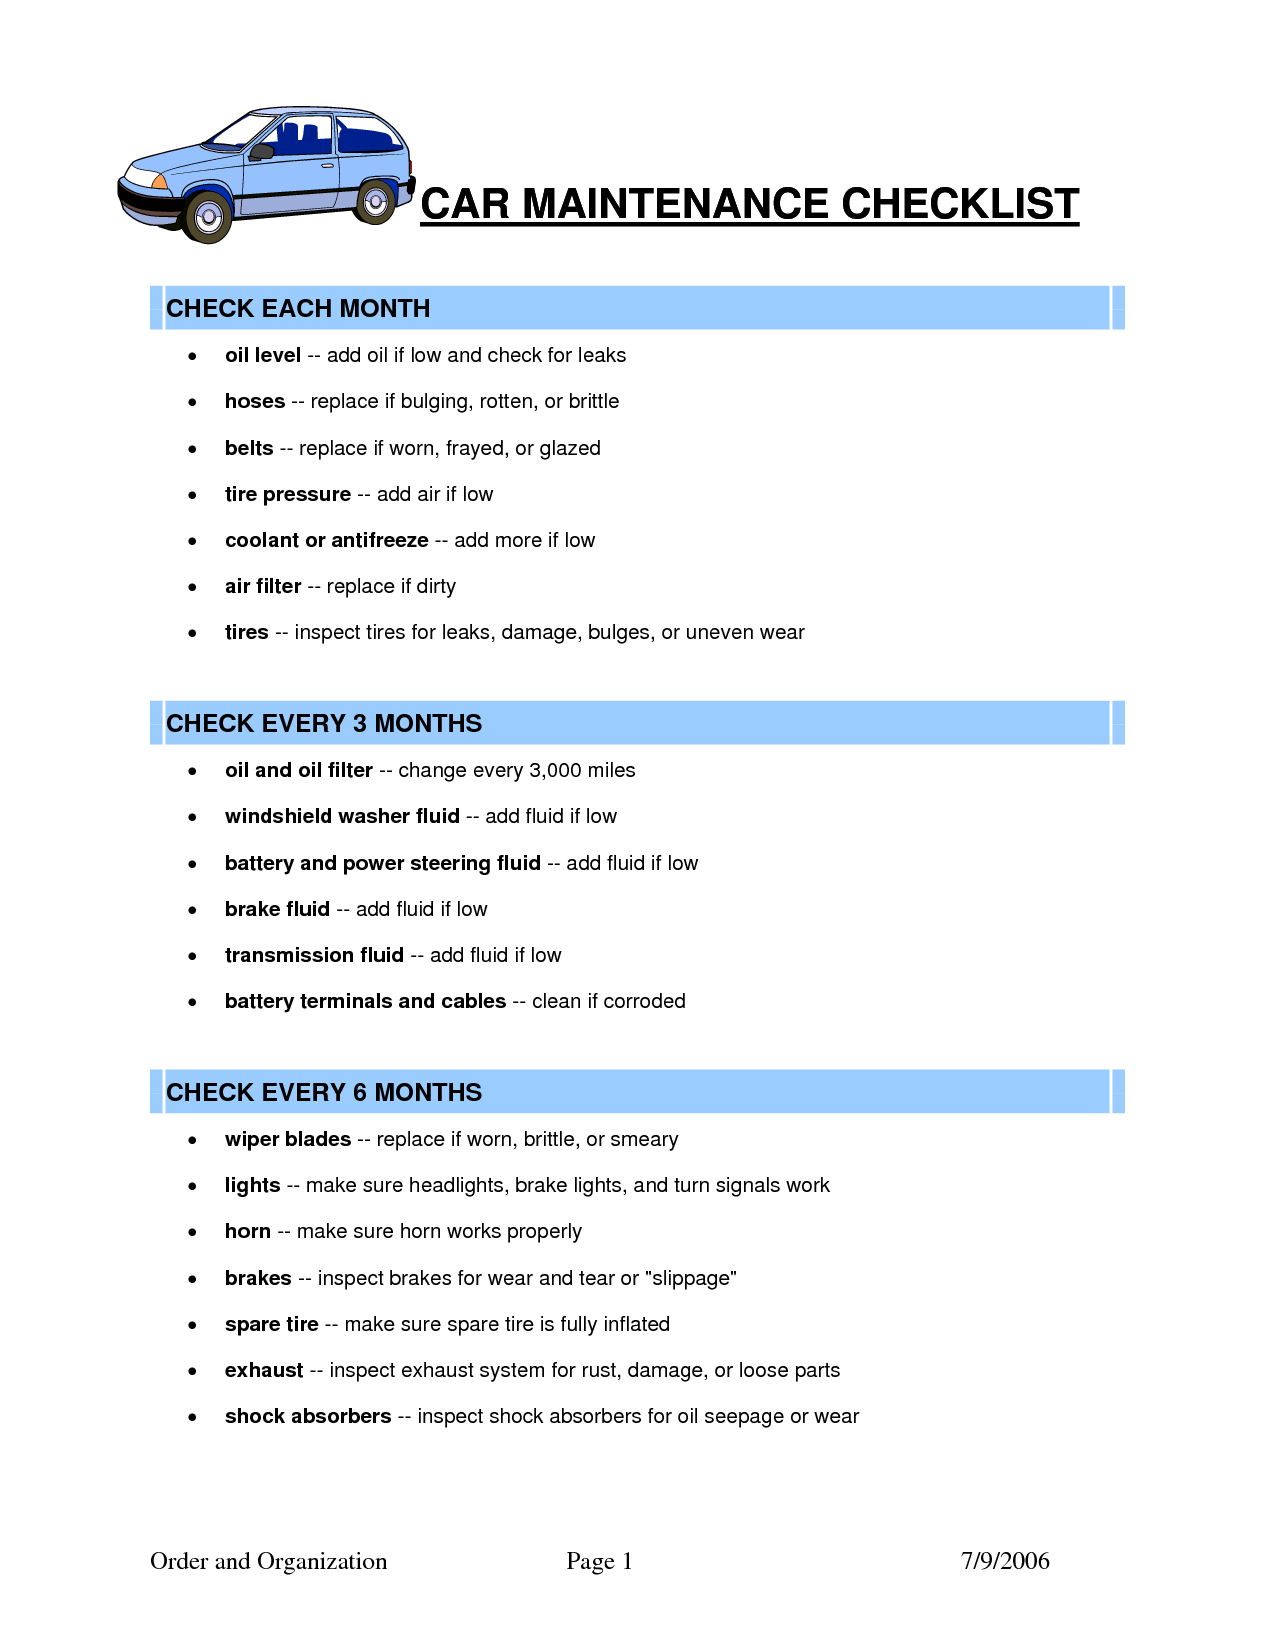 Car Maintenance Checklist >> Car Maintenance Checklist Template Car Maintenance Tips